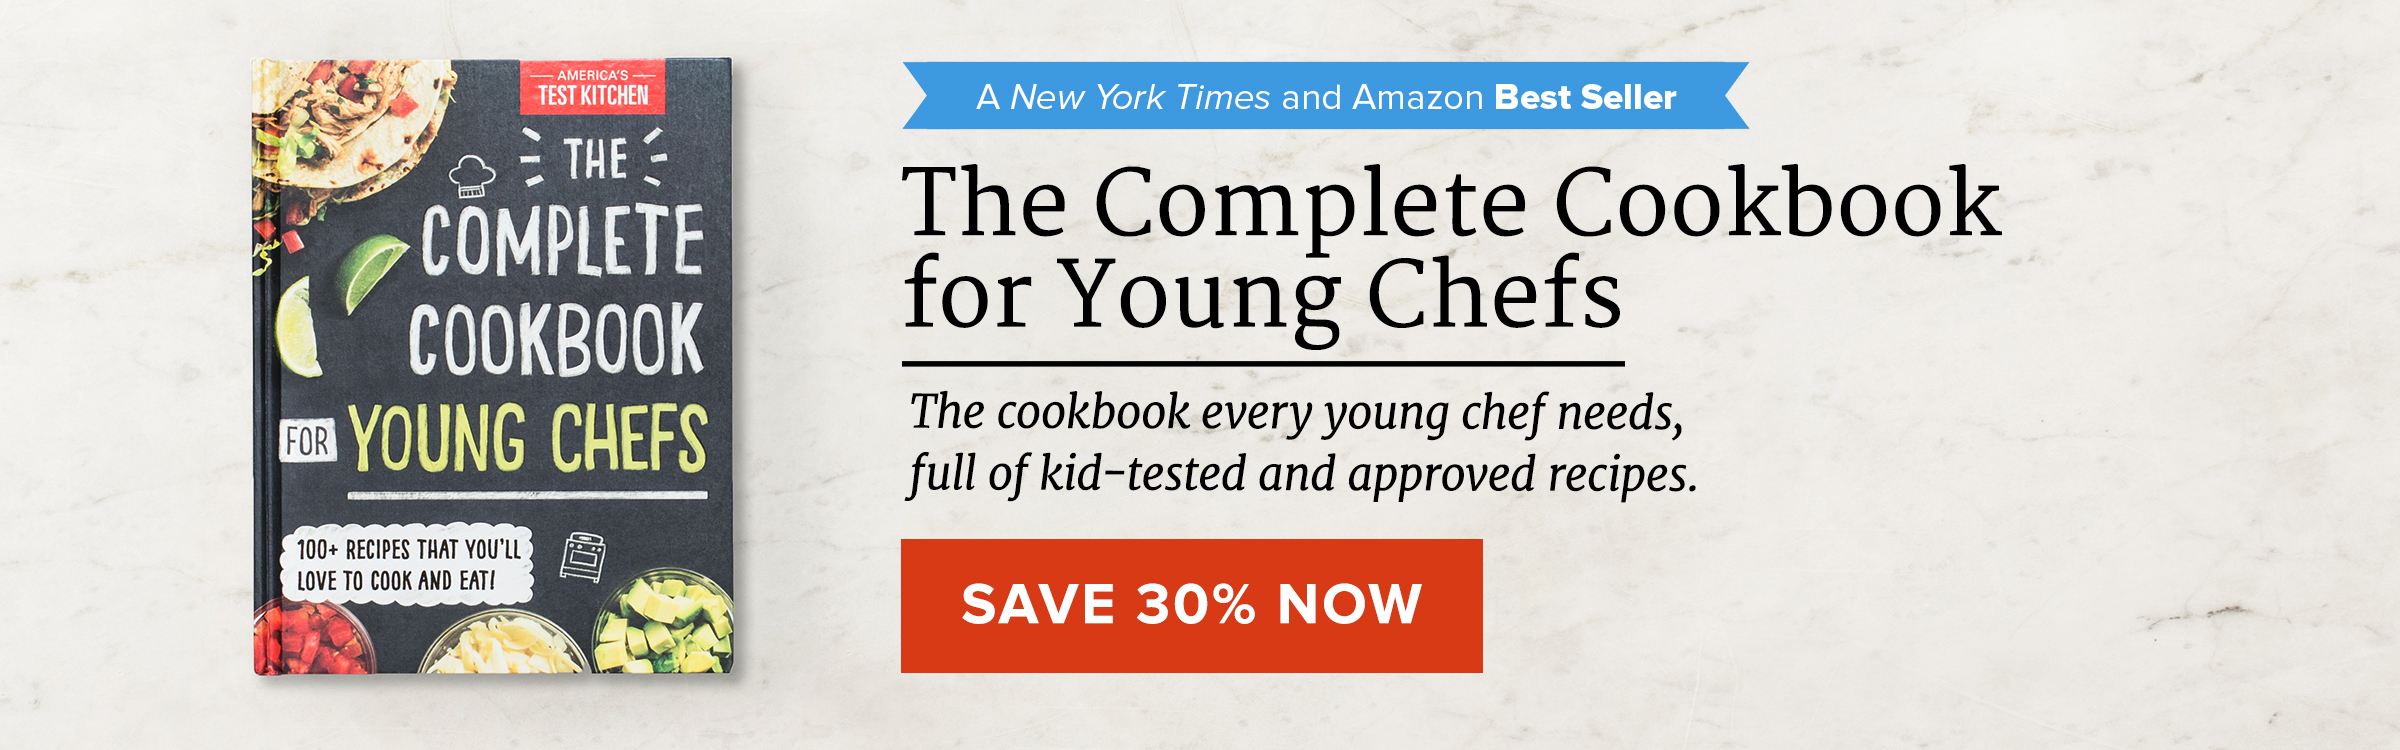 YoungChef